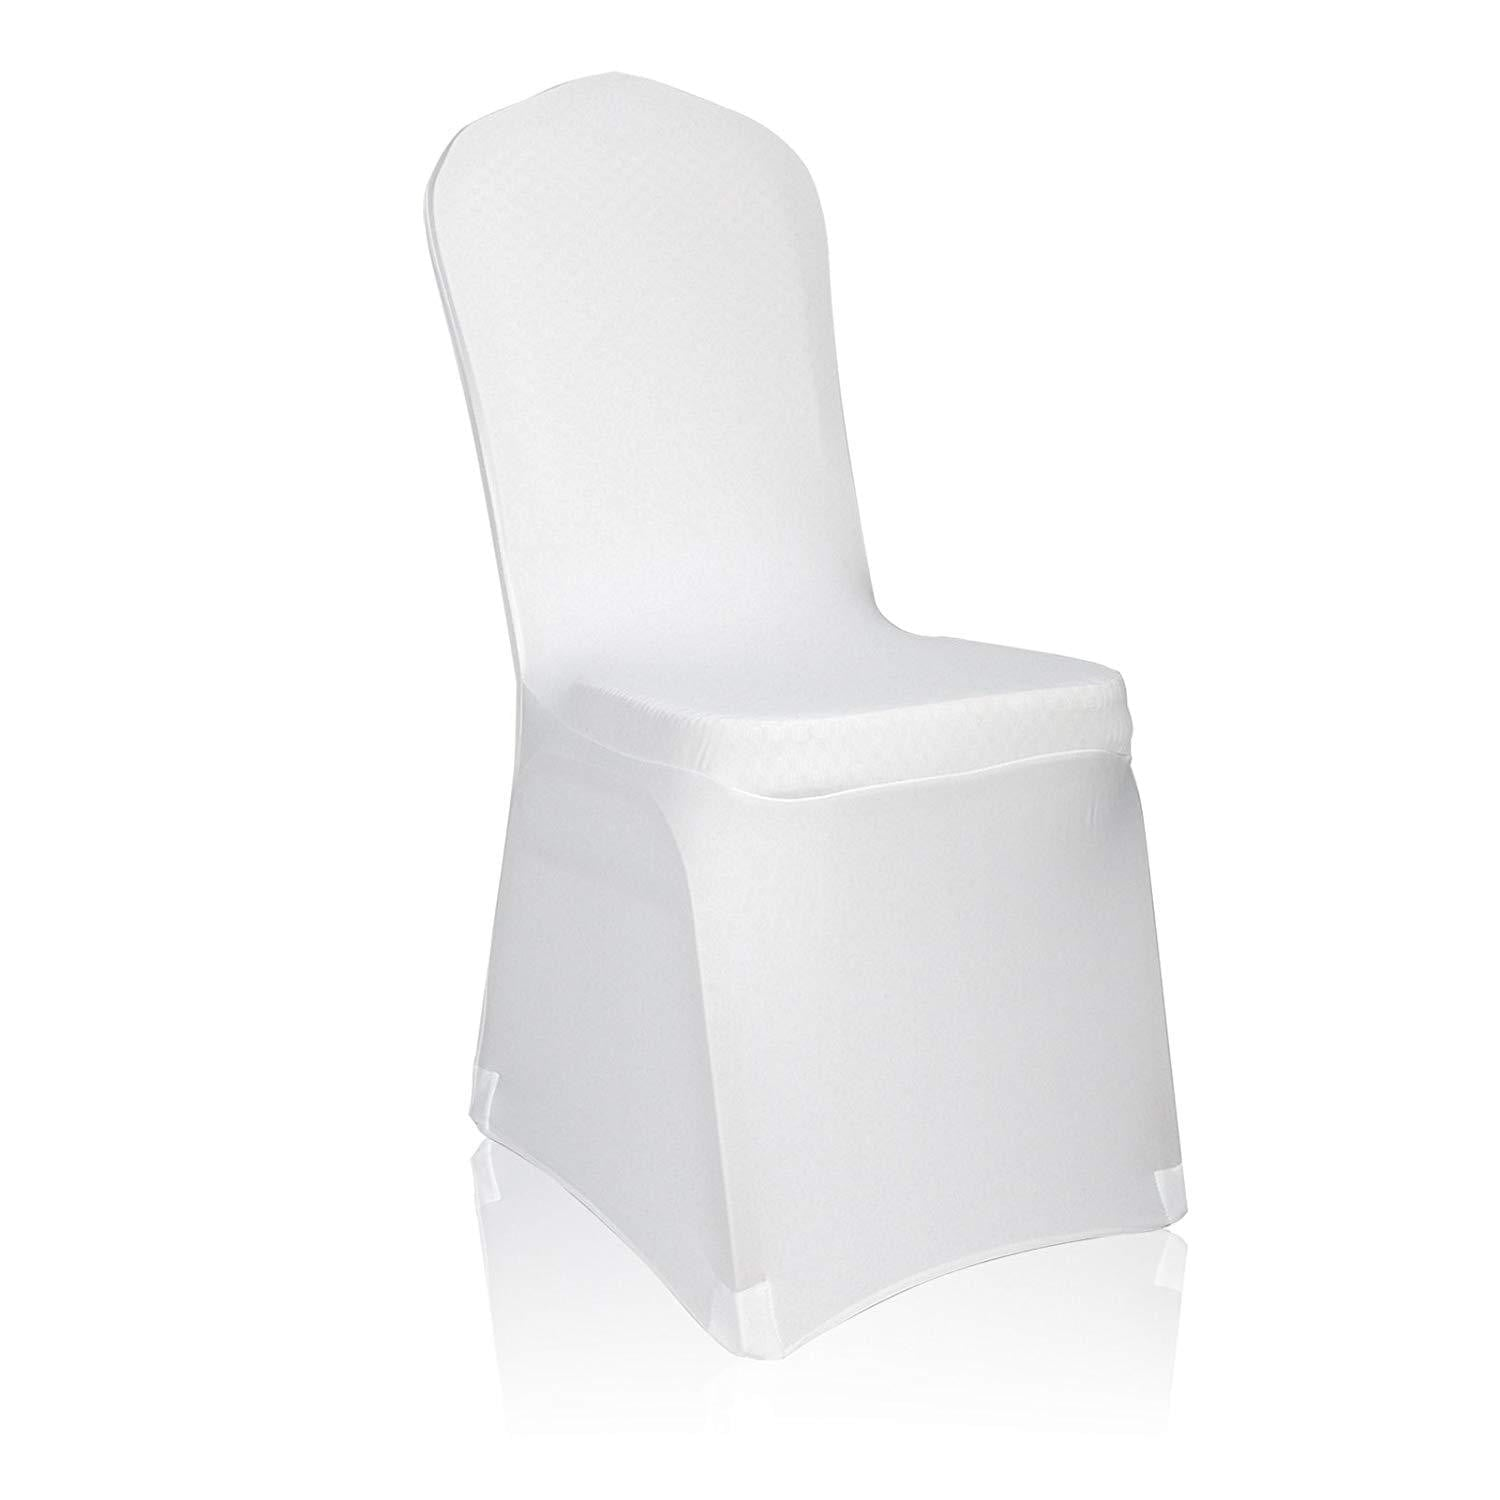 EMART White Color Polyester Spandex Banquet Wedding Party Chair Covers - EMART8